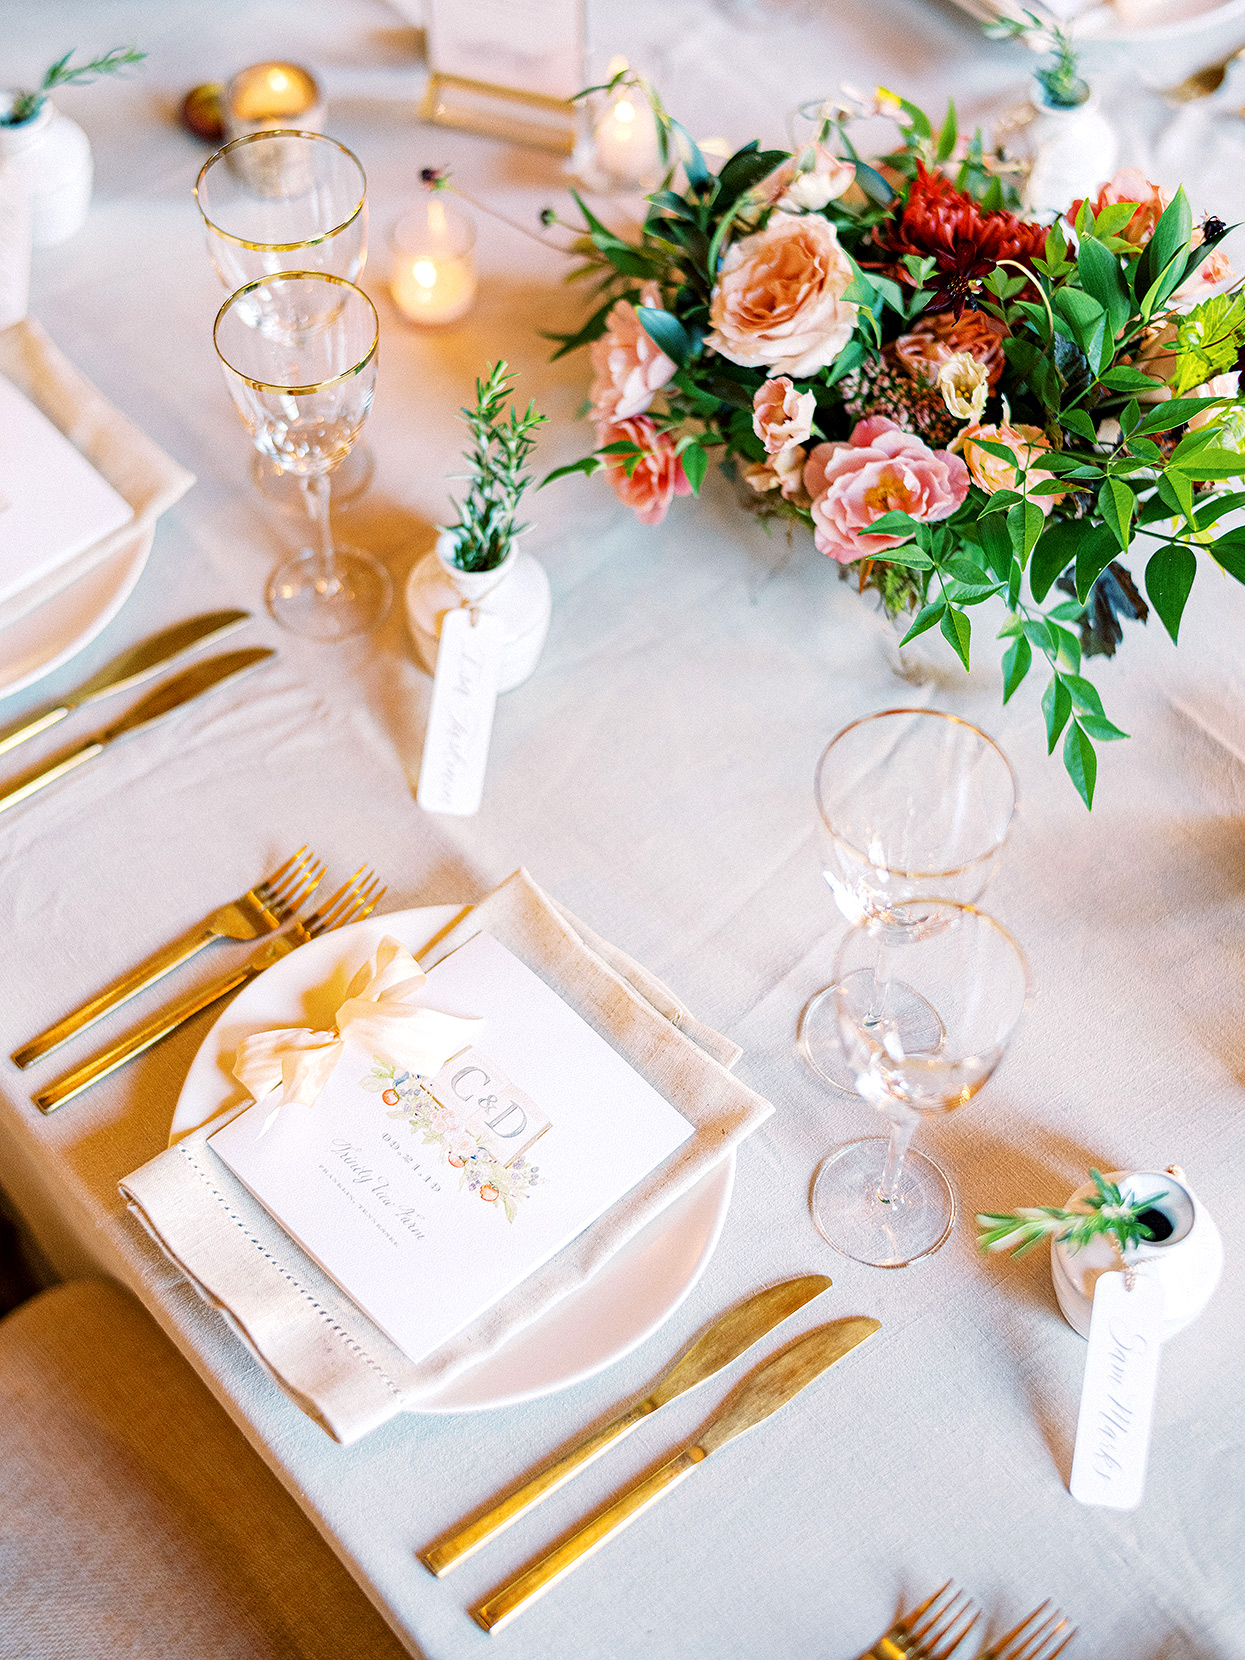 Claire and Dan's wedding reception place setting with gold cutlery